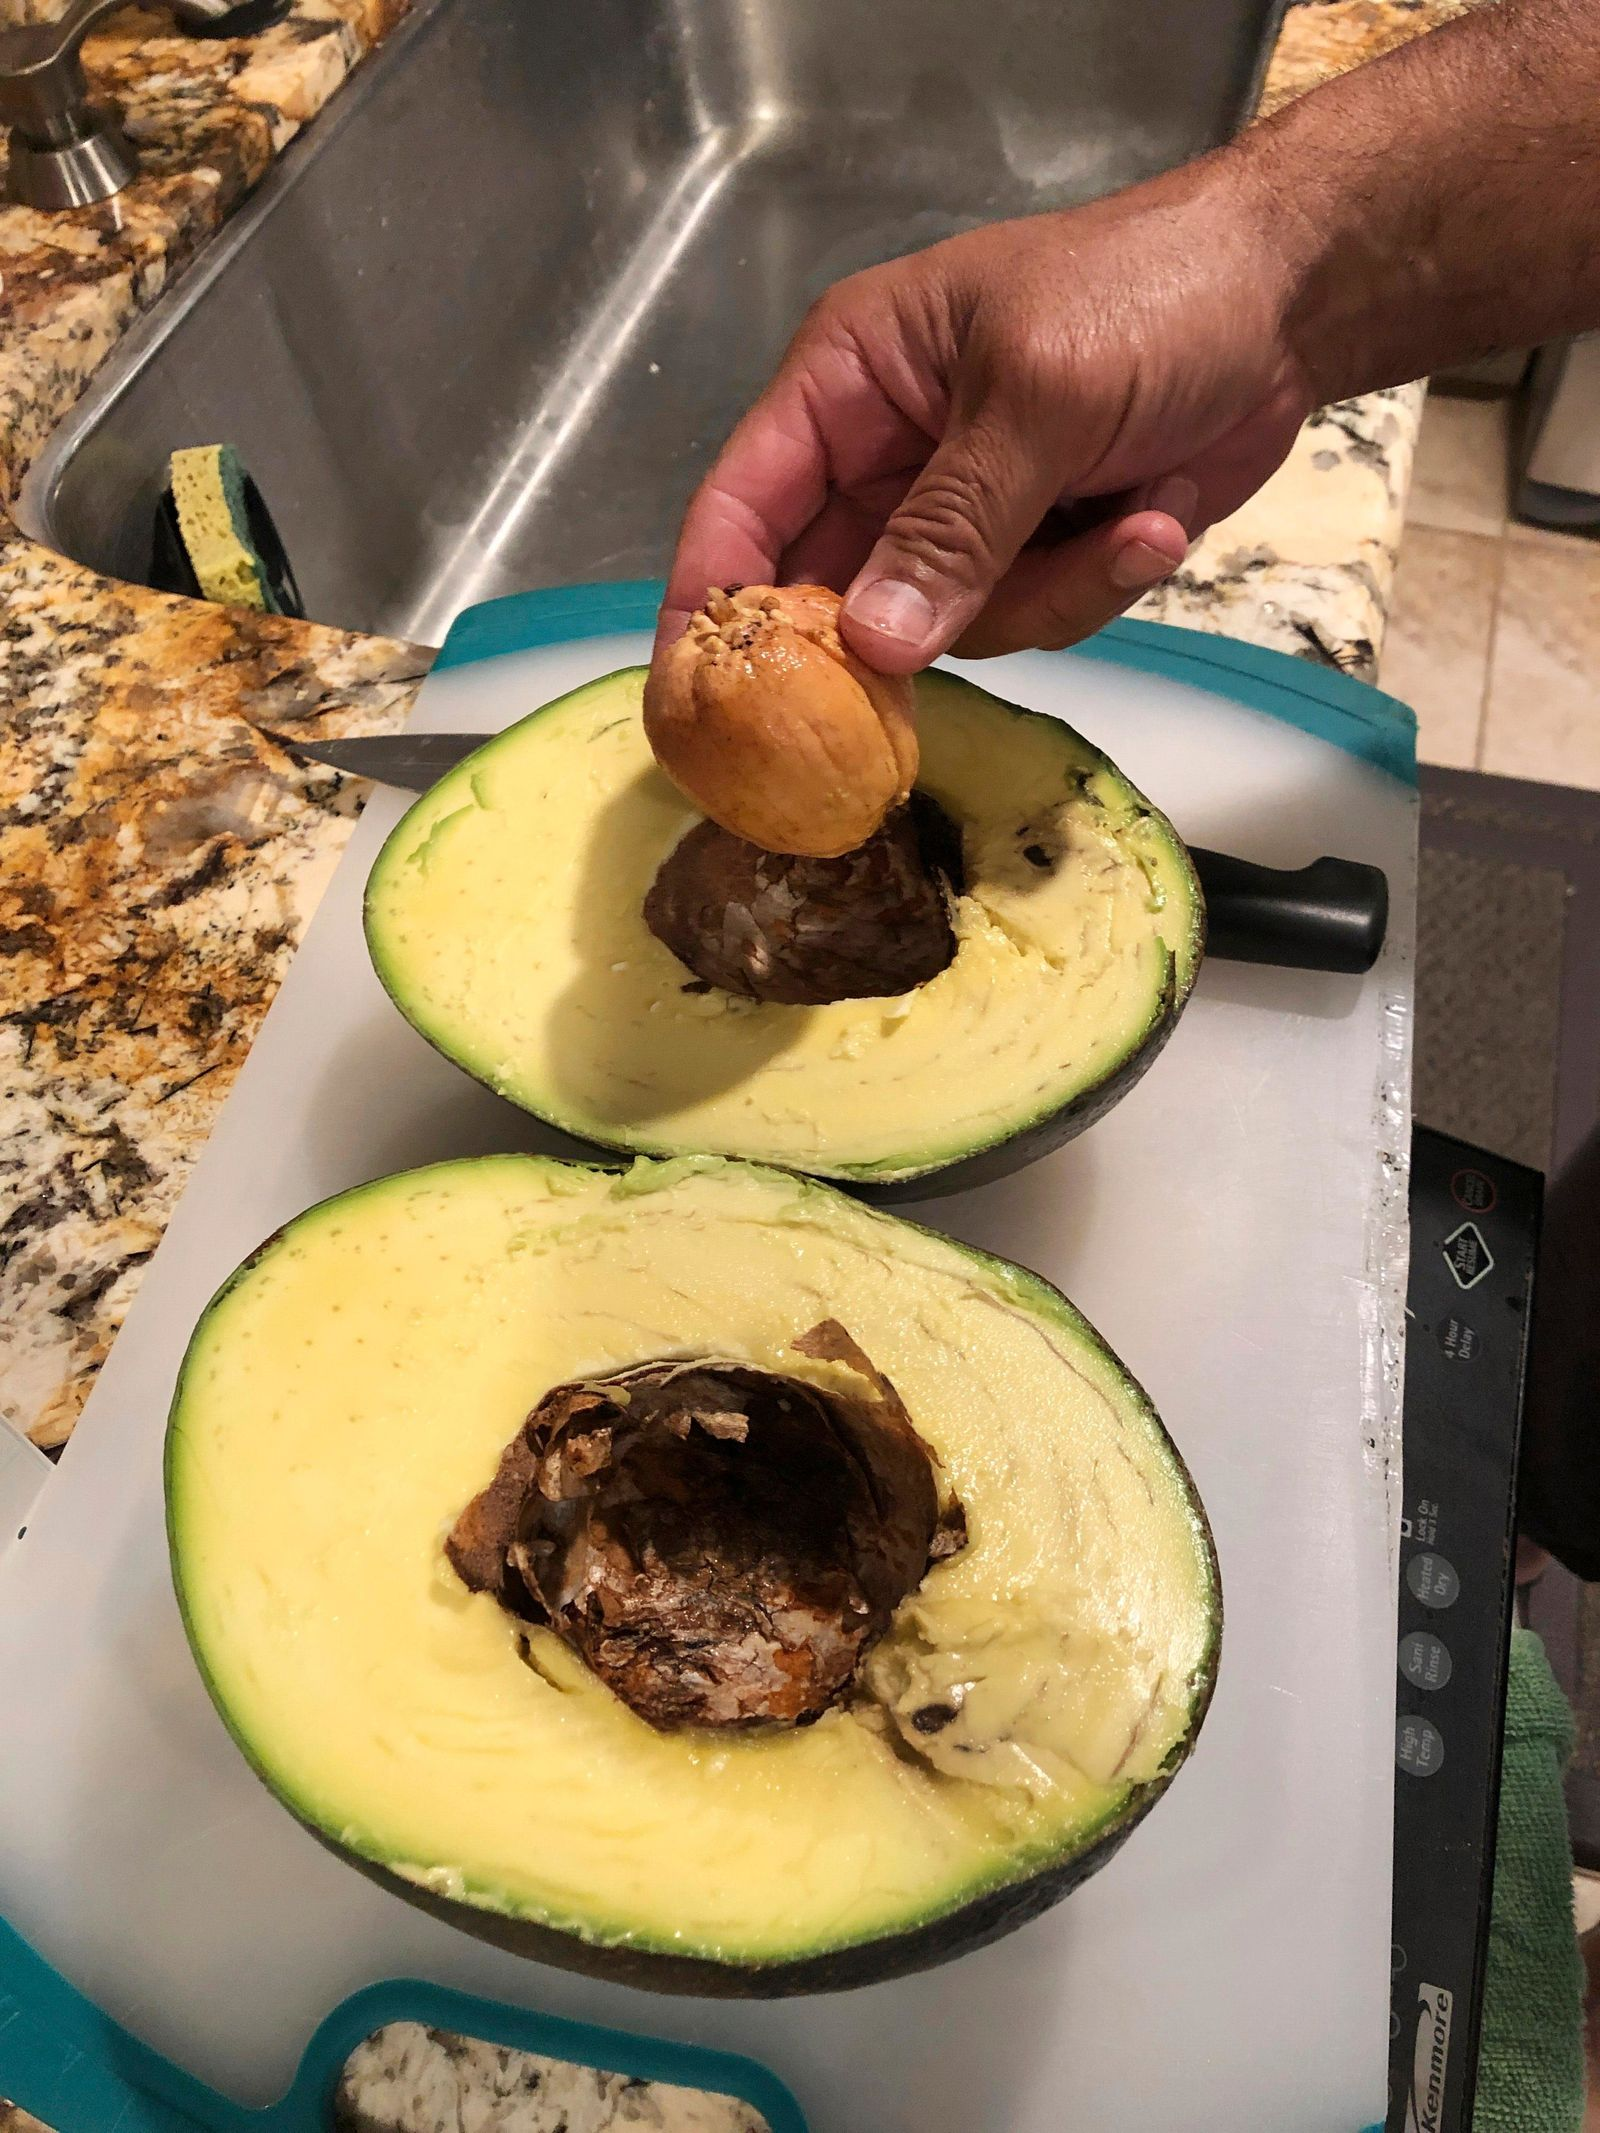 This Dec. 13, 2018 photo provided by Juliane Pokini shows a giant avocado being cut to make into guacamole at Kula Country Farms in Kula,Hawaii. The Pokini family from the island of Maui received the Guinness certificate this week for the avocado weighing 5.6 pounds (2.54 kilograms), The Maui News reported Thursday, Oct. 11, 2019. (Juliane Pokini via AP)